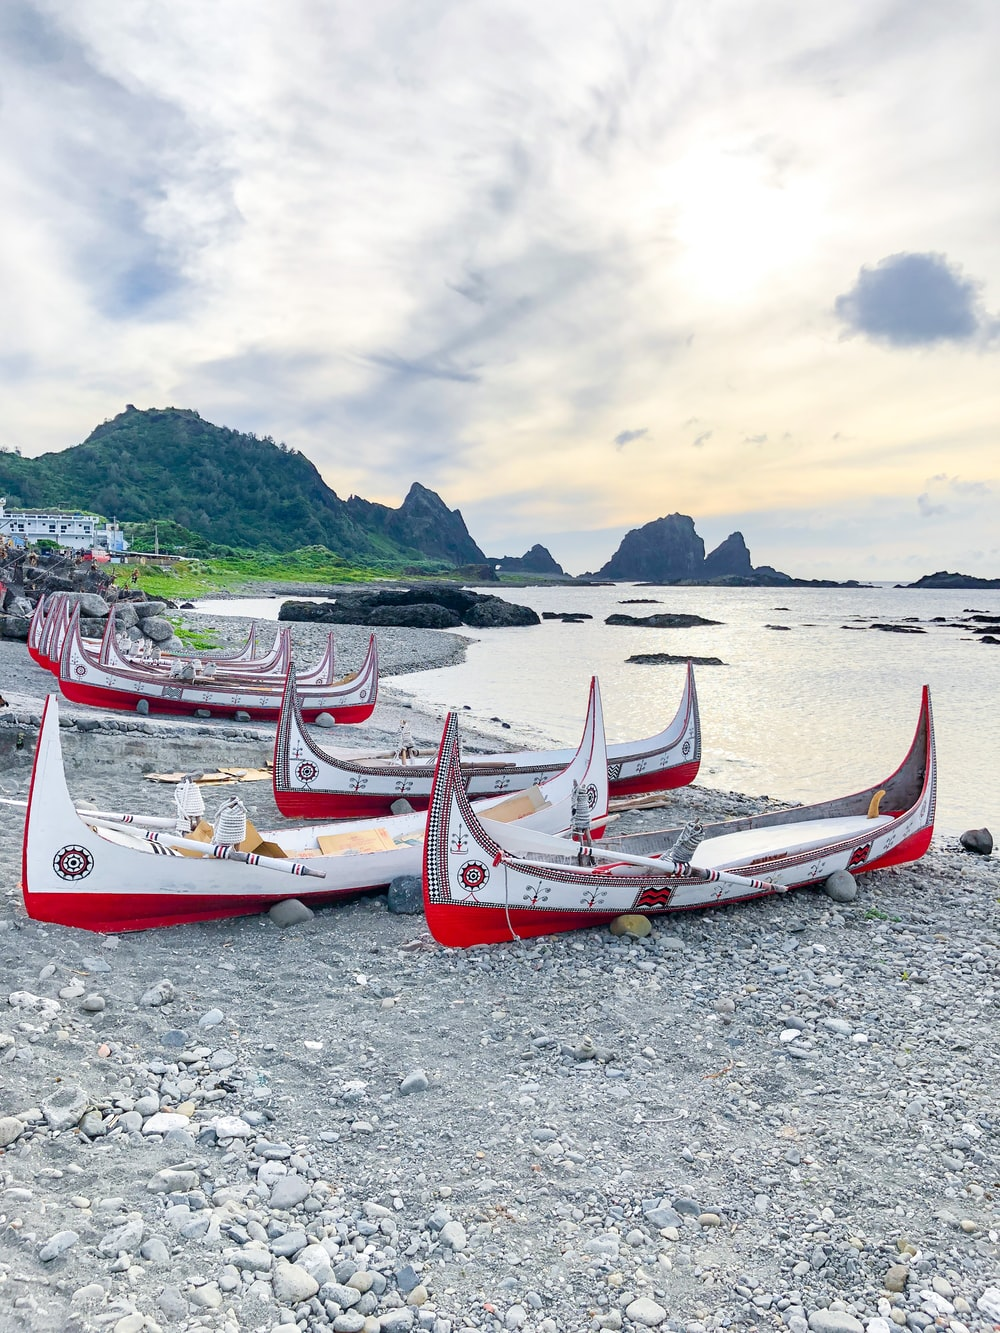 white and red boat on beach during daytime